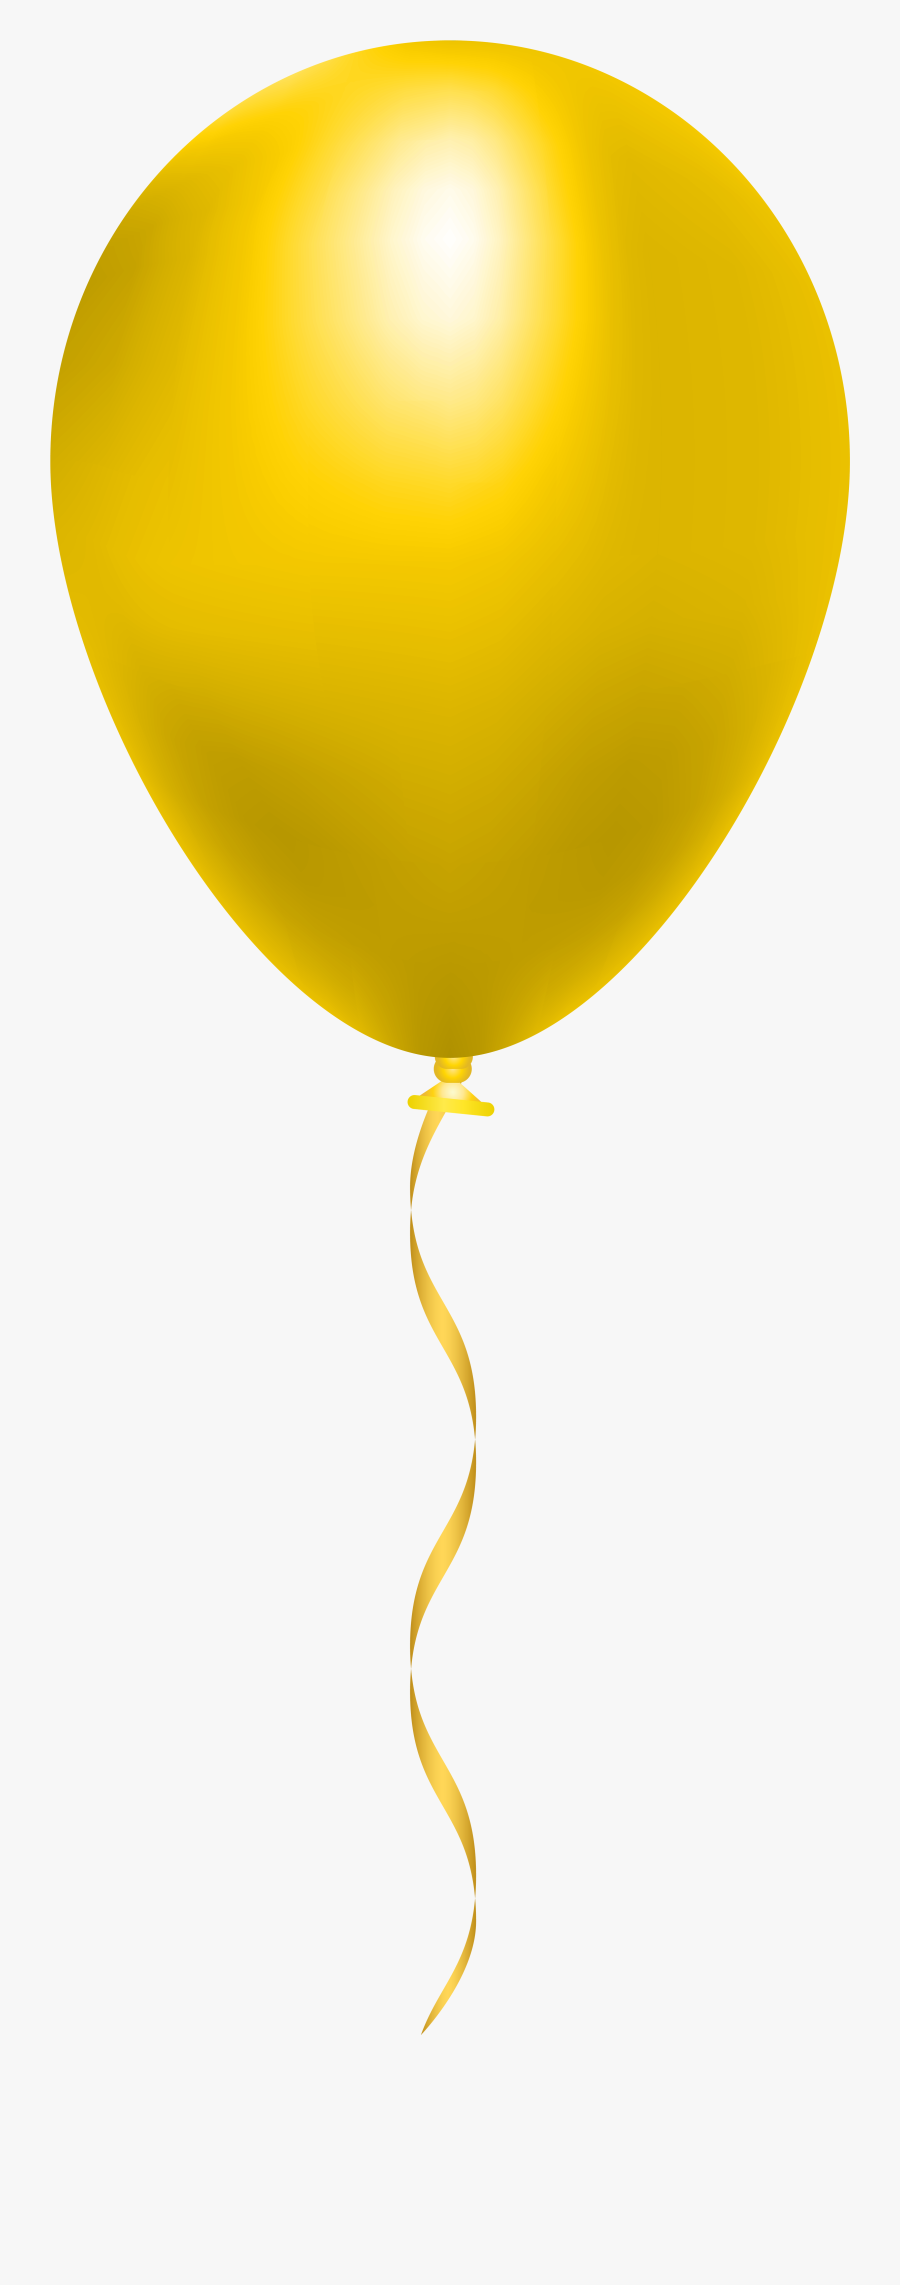 Transparent Baloon Clipart - Yellow Balloon Transparent Background, Transparent Clipart